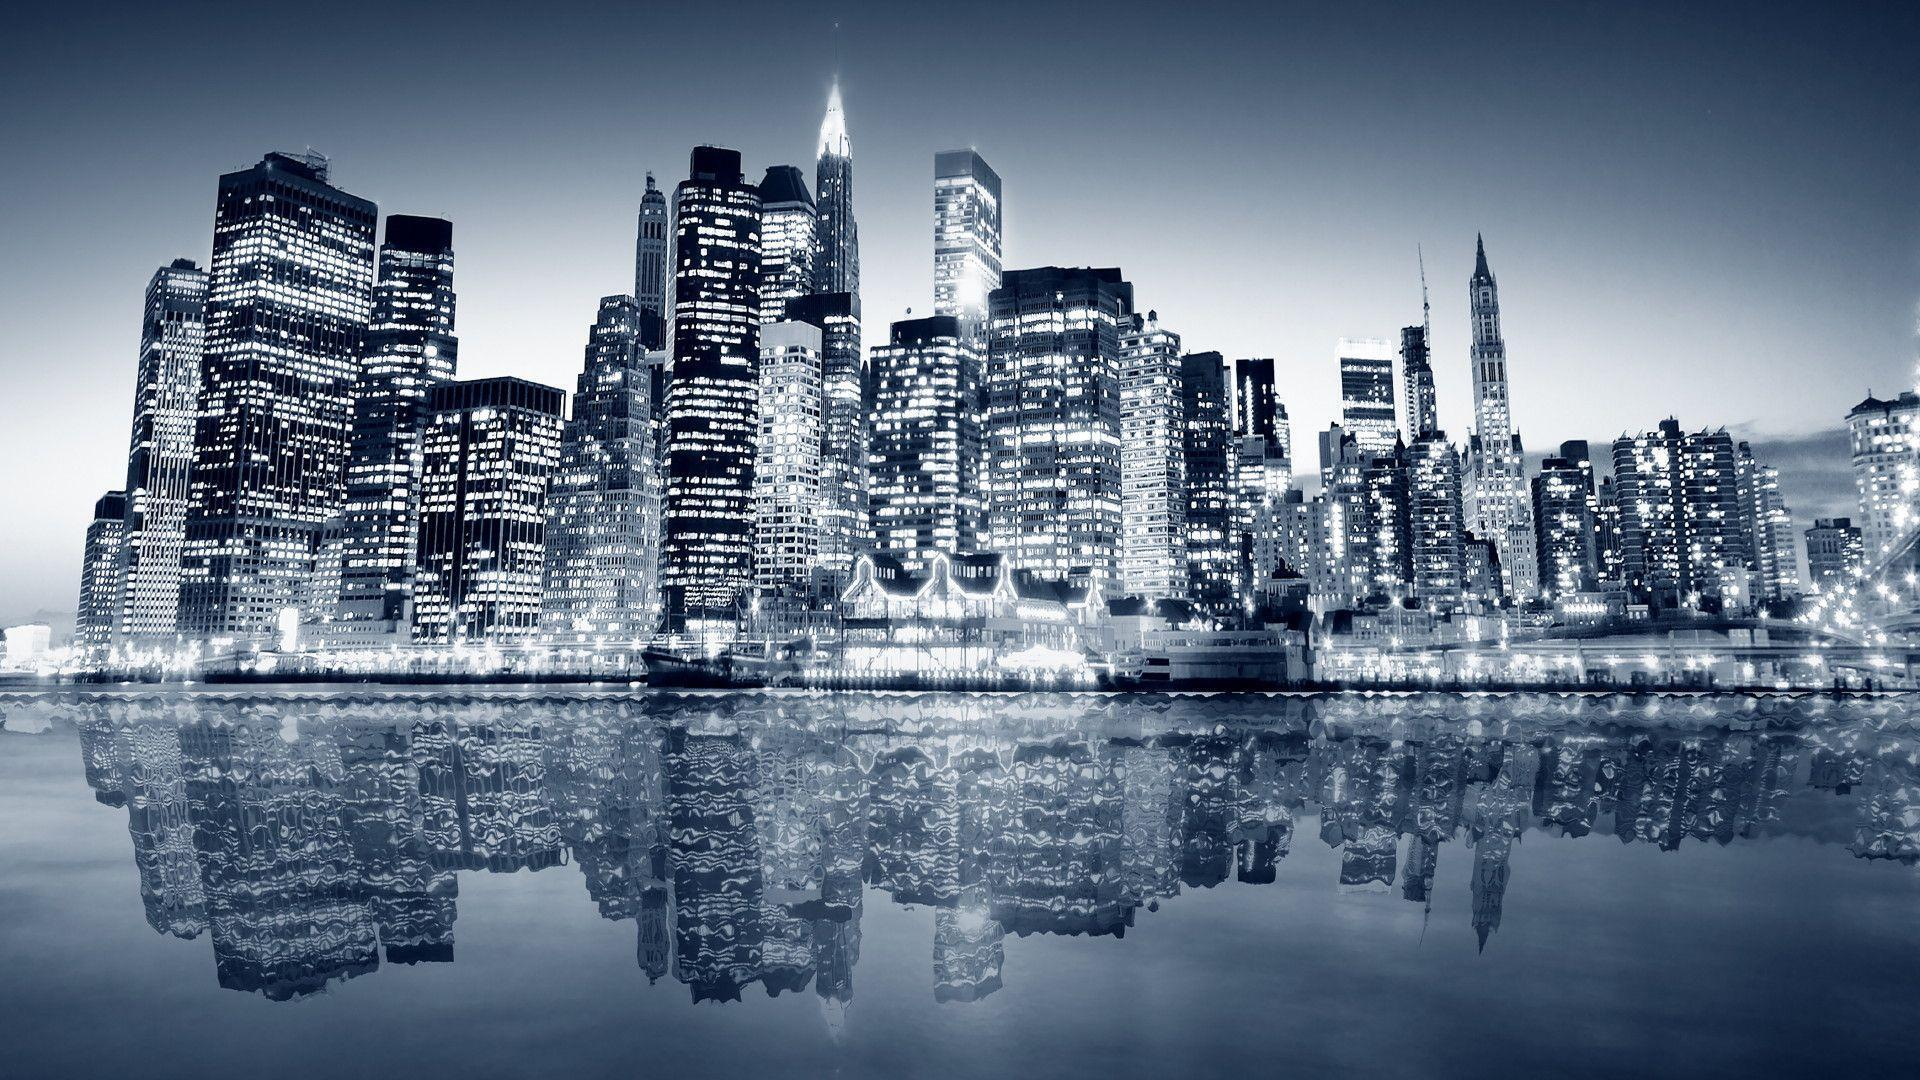 City Lights HD desktop wallpaper High Definition Fullscreen